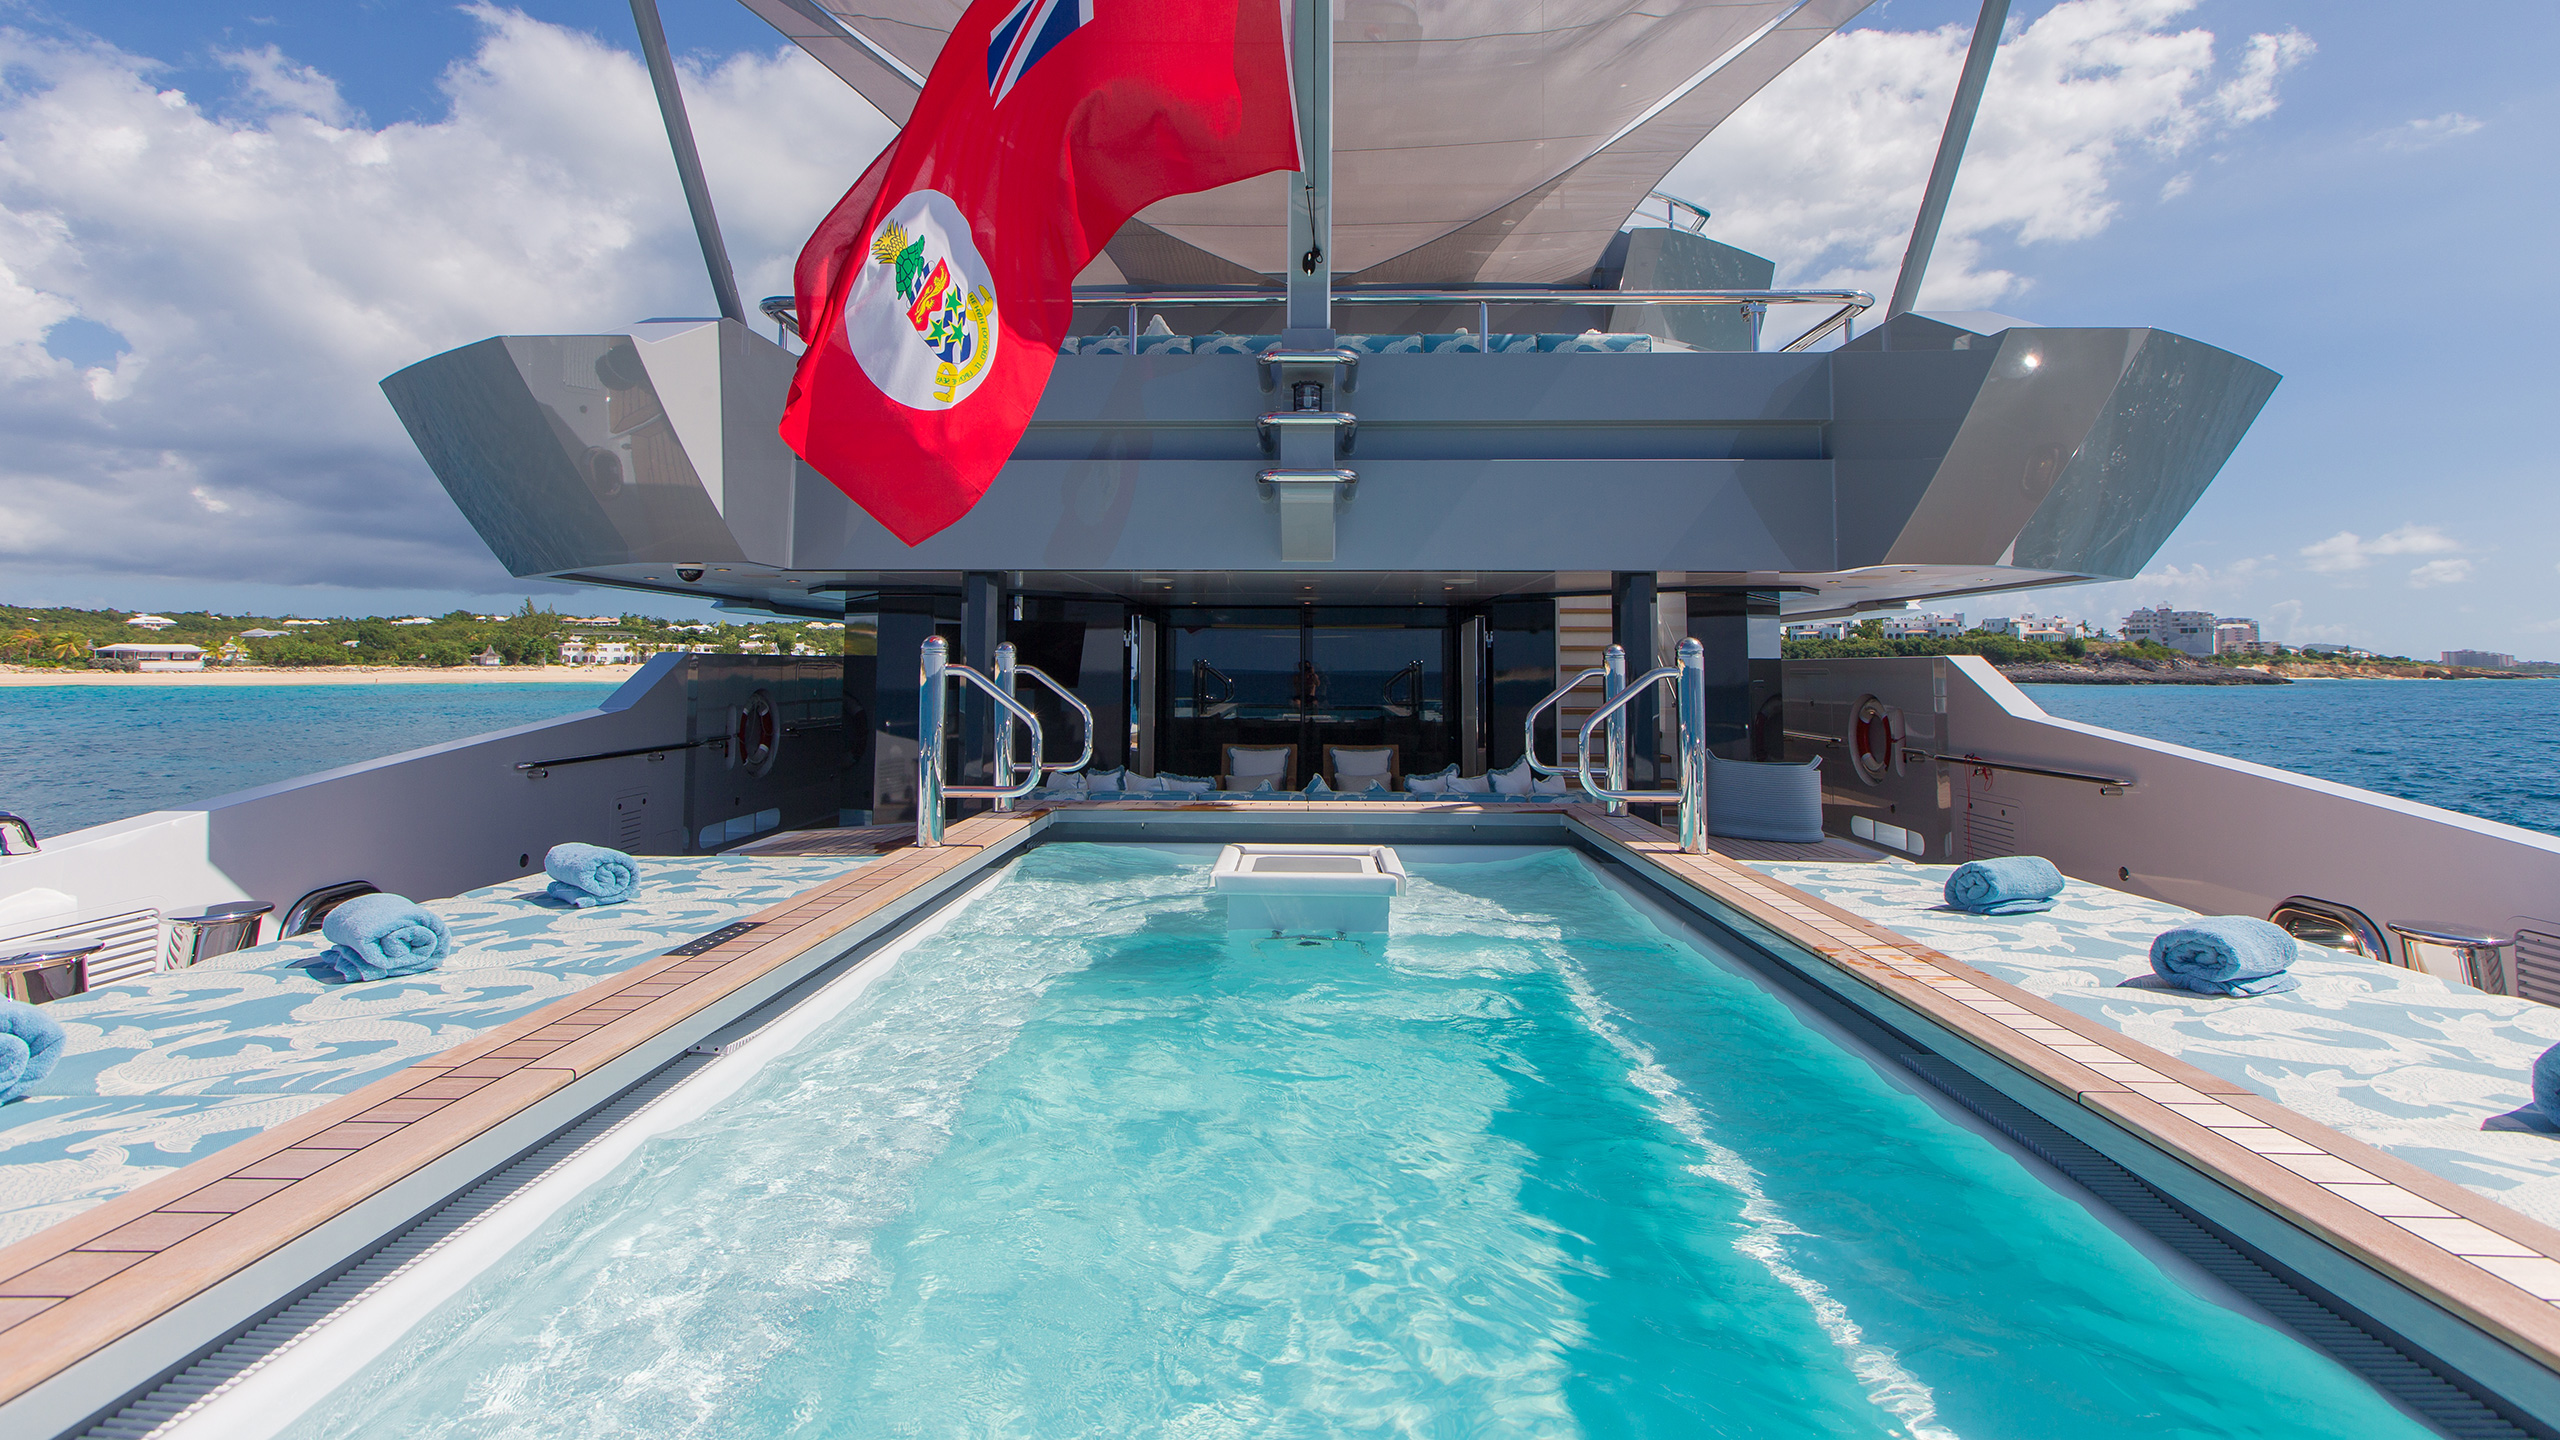 Ester 3 Yacht Pool